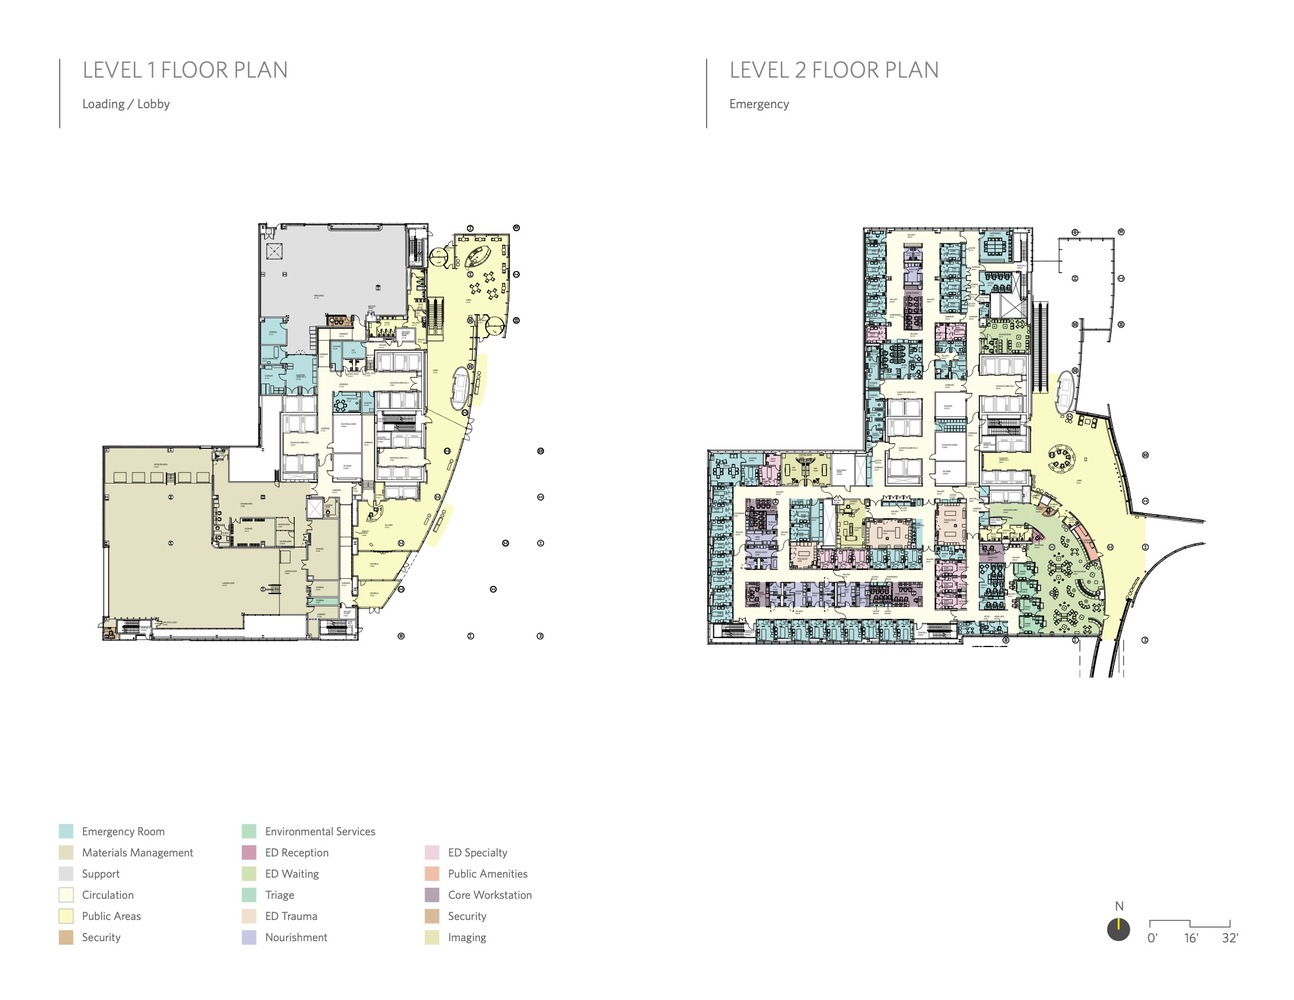 ann robert h lurie children s hospital of chicago zgf architects solomon cordwell buenz anderson mikos architects level 1 and 2 floor plan [ 1294 x 1000 Pixel ]